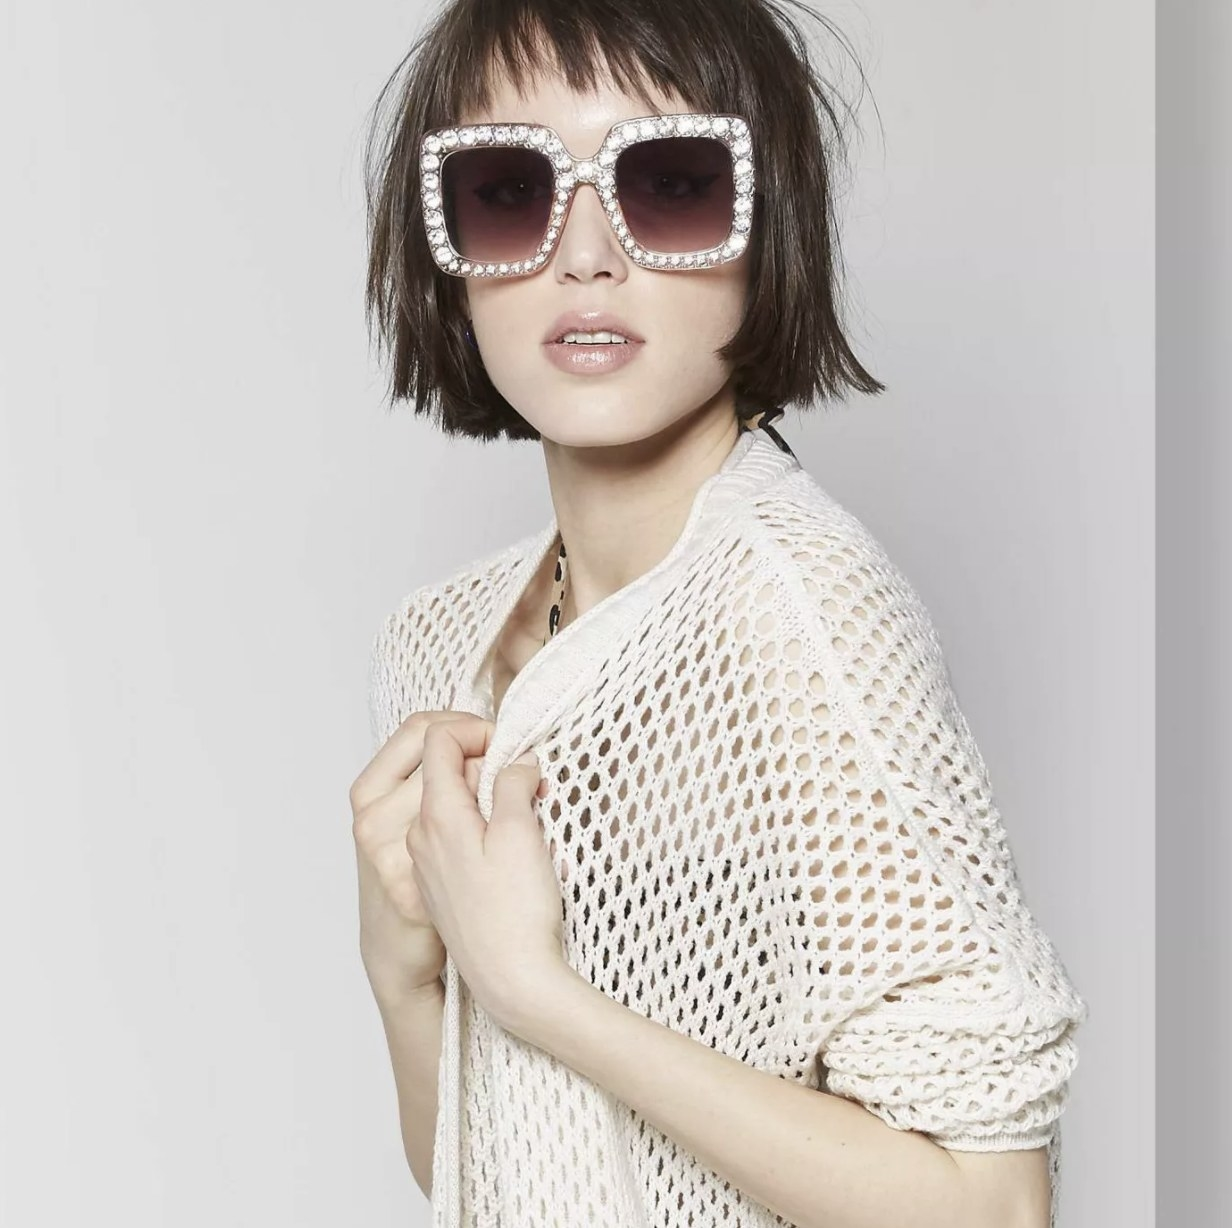 A pair of pink squared-shaped sunglasses with a dark ombre tint on the lens